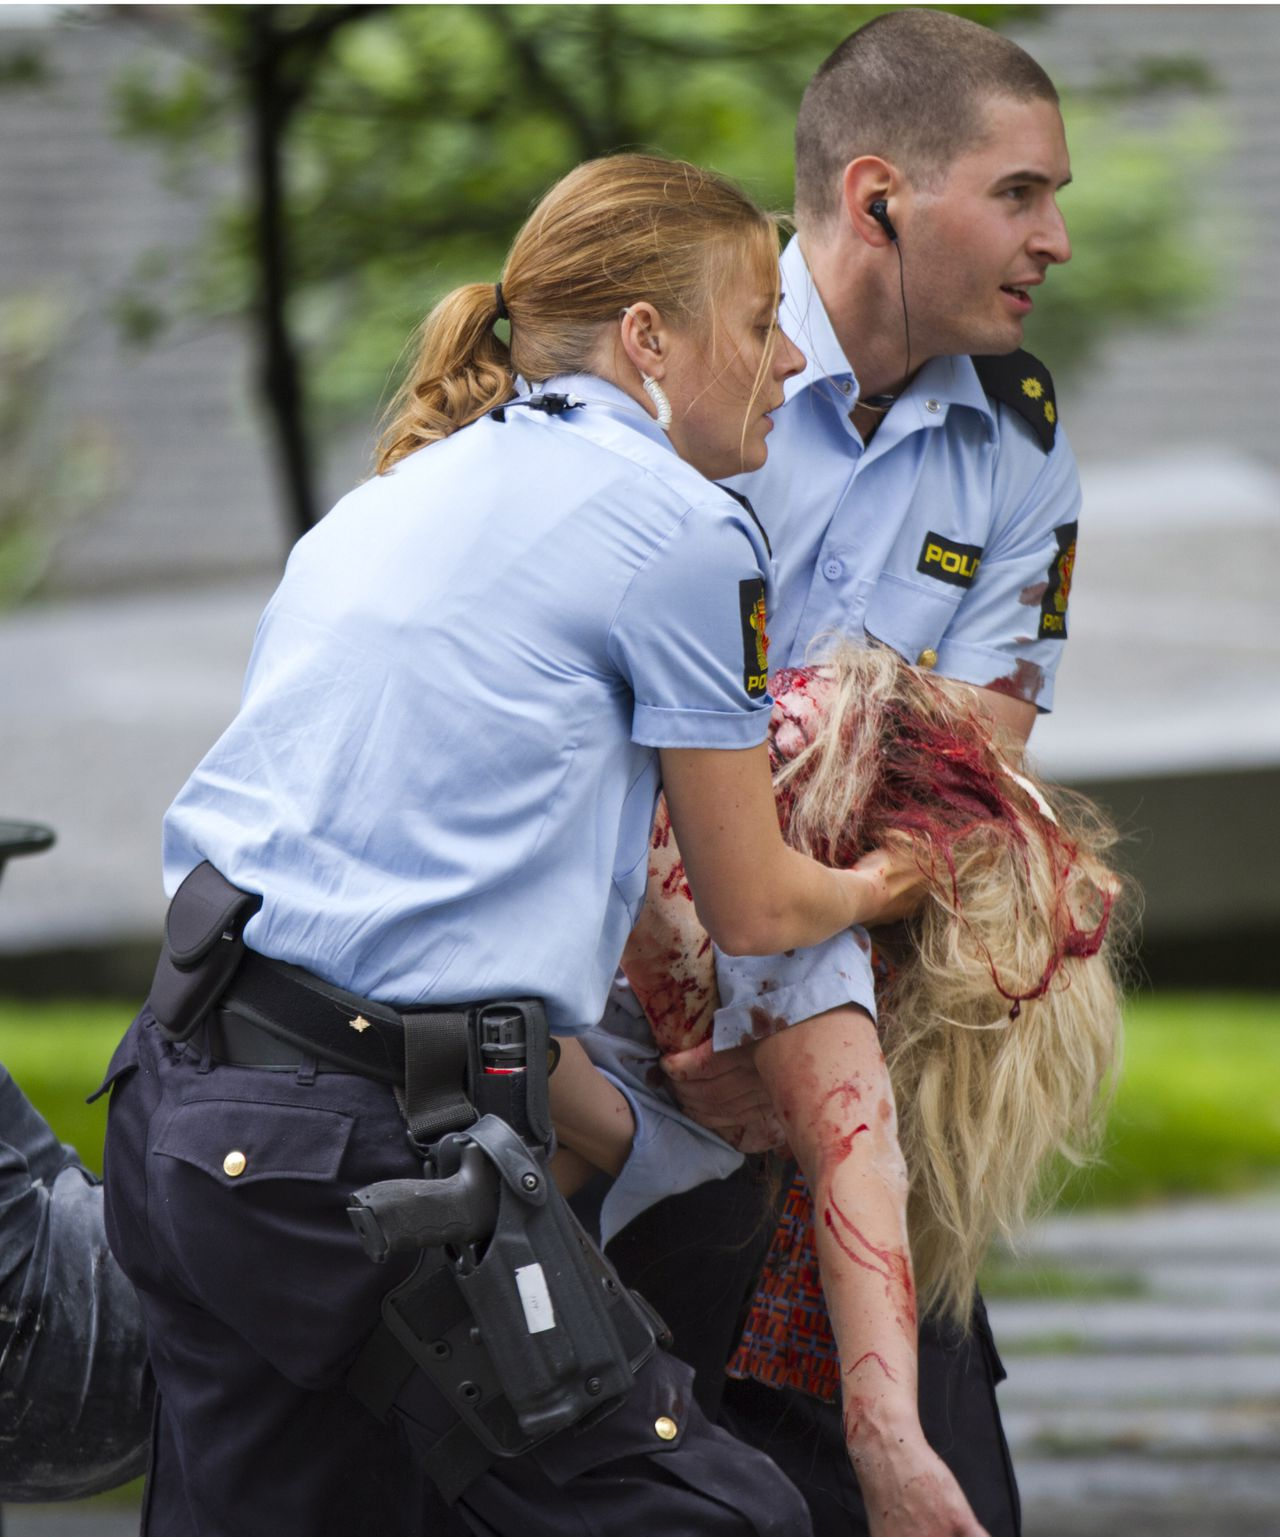 A woman is carried by emergency workers at the scene after an explosion in Oslo, Norway, Friday July 22, 2011. A loud explosion shattered windows Friday in several buildings including the government headquarters in Oslo which includes the prime minister's office, injuring several people. Prime Minister Jens Stoltenberg is safe, government spokeswoman Camilla Ryste told The Associated Press. (AP PHOTO / Thomas Winje, Scanpix) NORWAY OUT